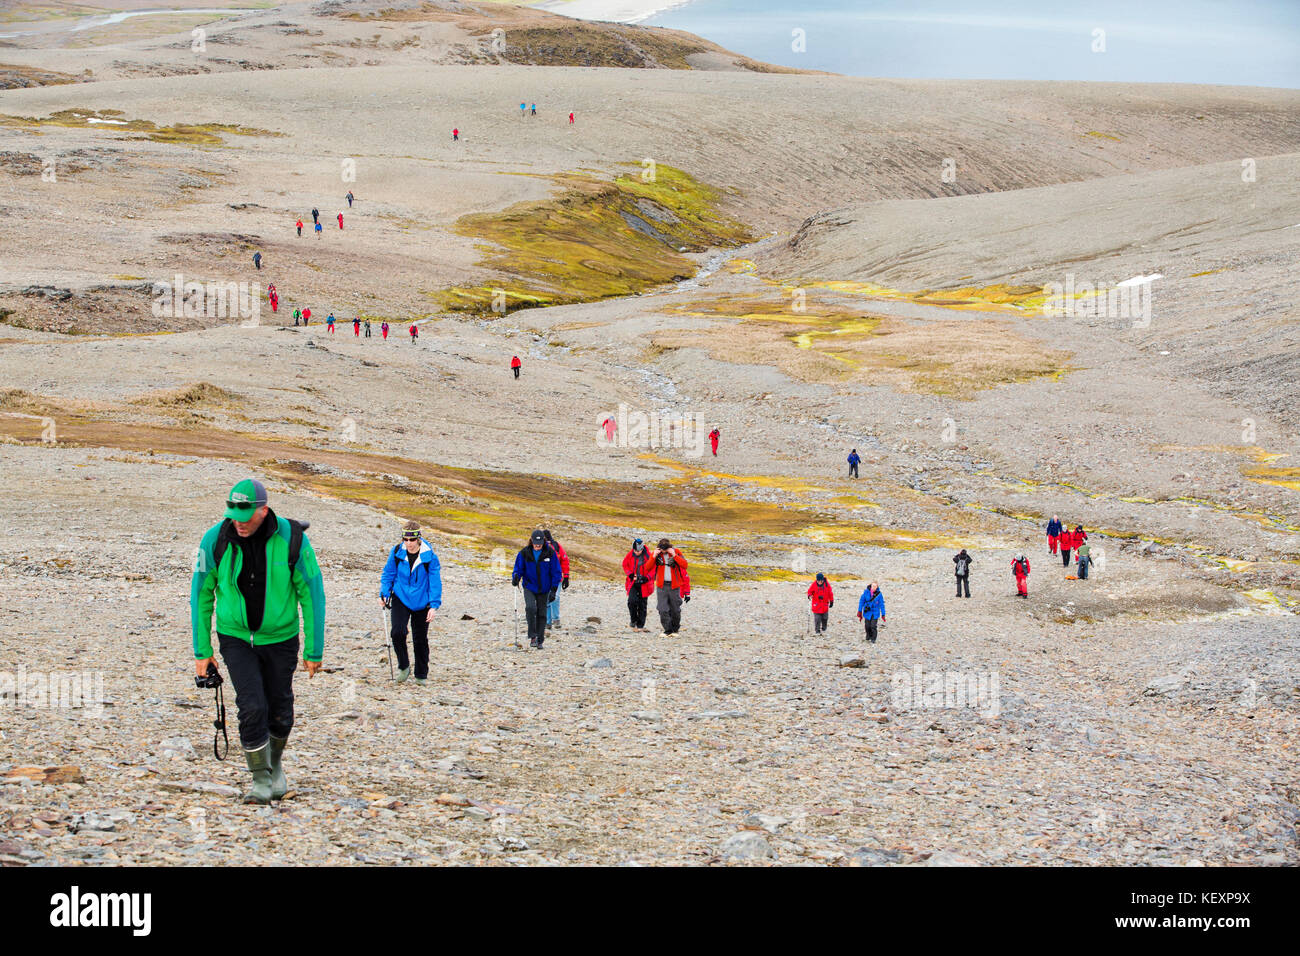 Passengers on an expedition cruise to Anarctica recreat part of Shakleton's famous walk across South Georgia. The Stock Photo